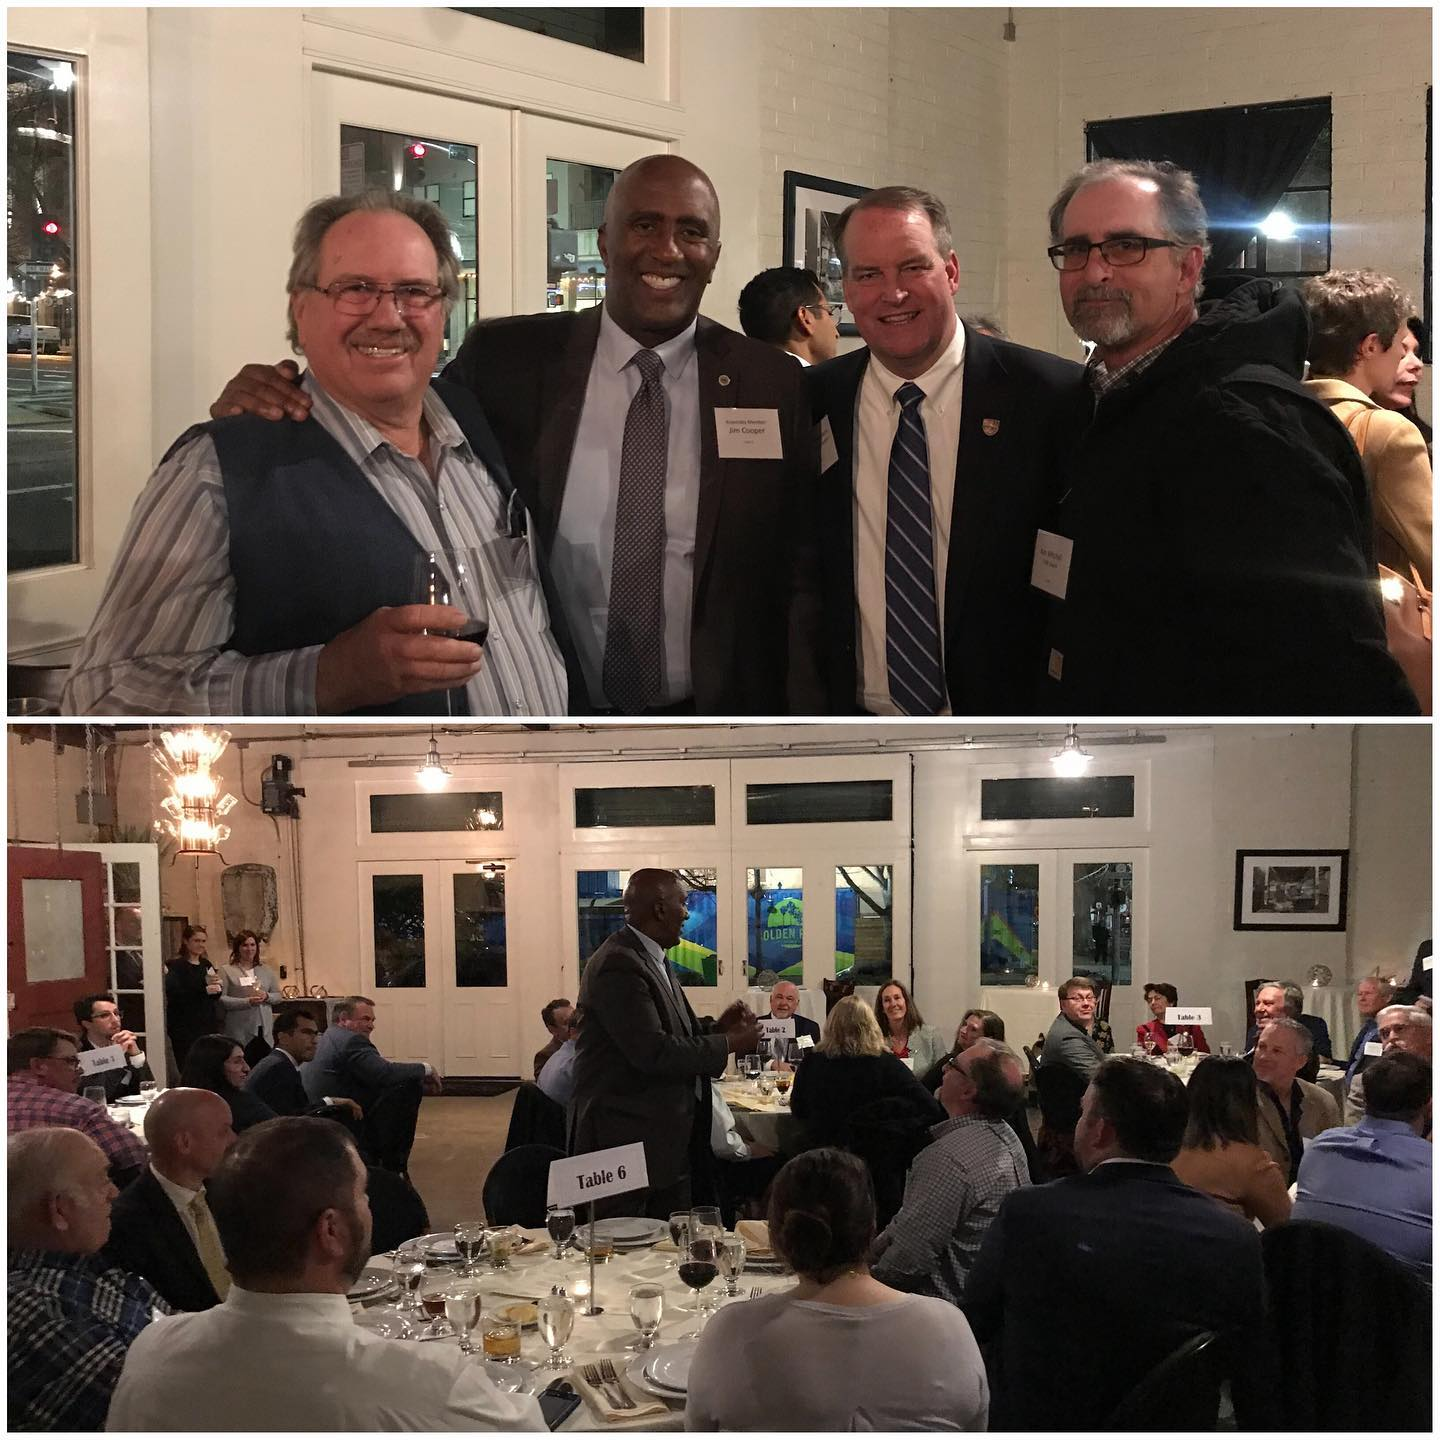 I was happy to join the California Farm Bureau for their dinner in Sacramento. It's so nice to meet folks from up and down the state who contribute to our state's #1 industry, agriculture!